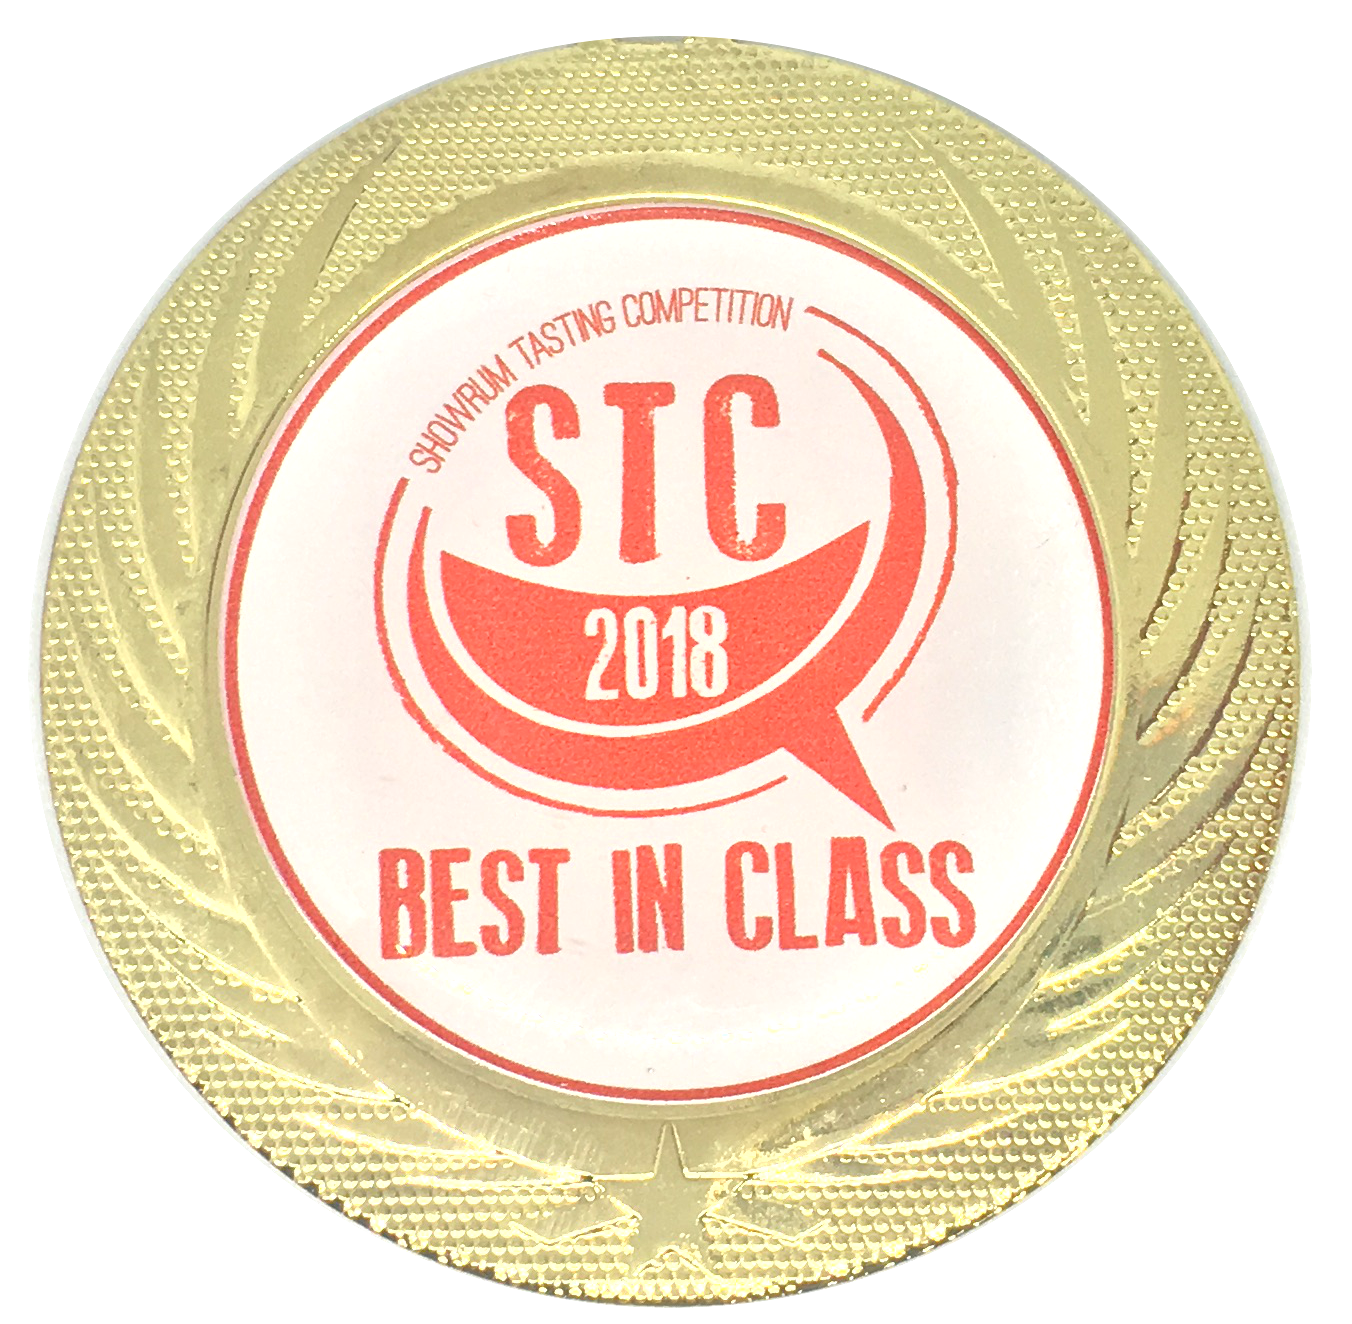 3 Stars : Showrum Tasting Competition 2018, Best in Class, Italy